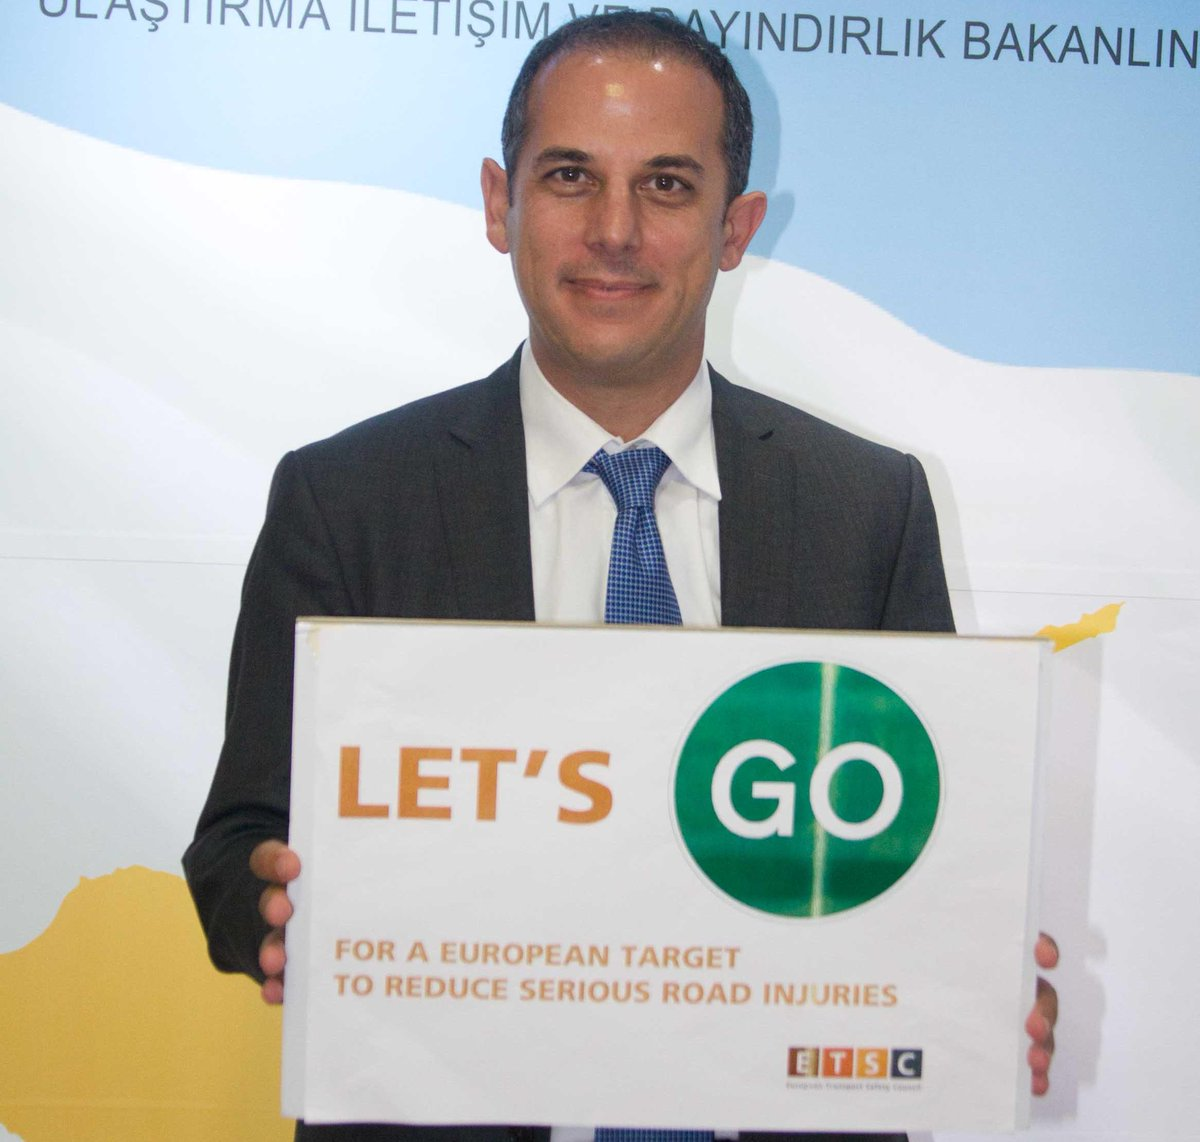 Thank you Marios Demetriades, Cyprus Min.of Transport for supporting an EU serious road injury reduction target. http://t.co/pOECLJGxdb